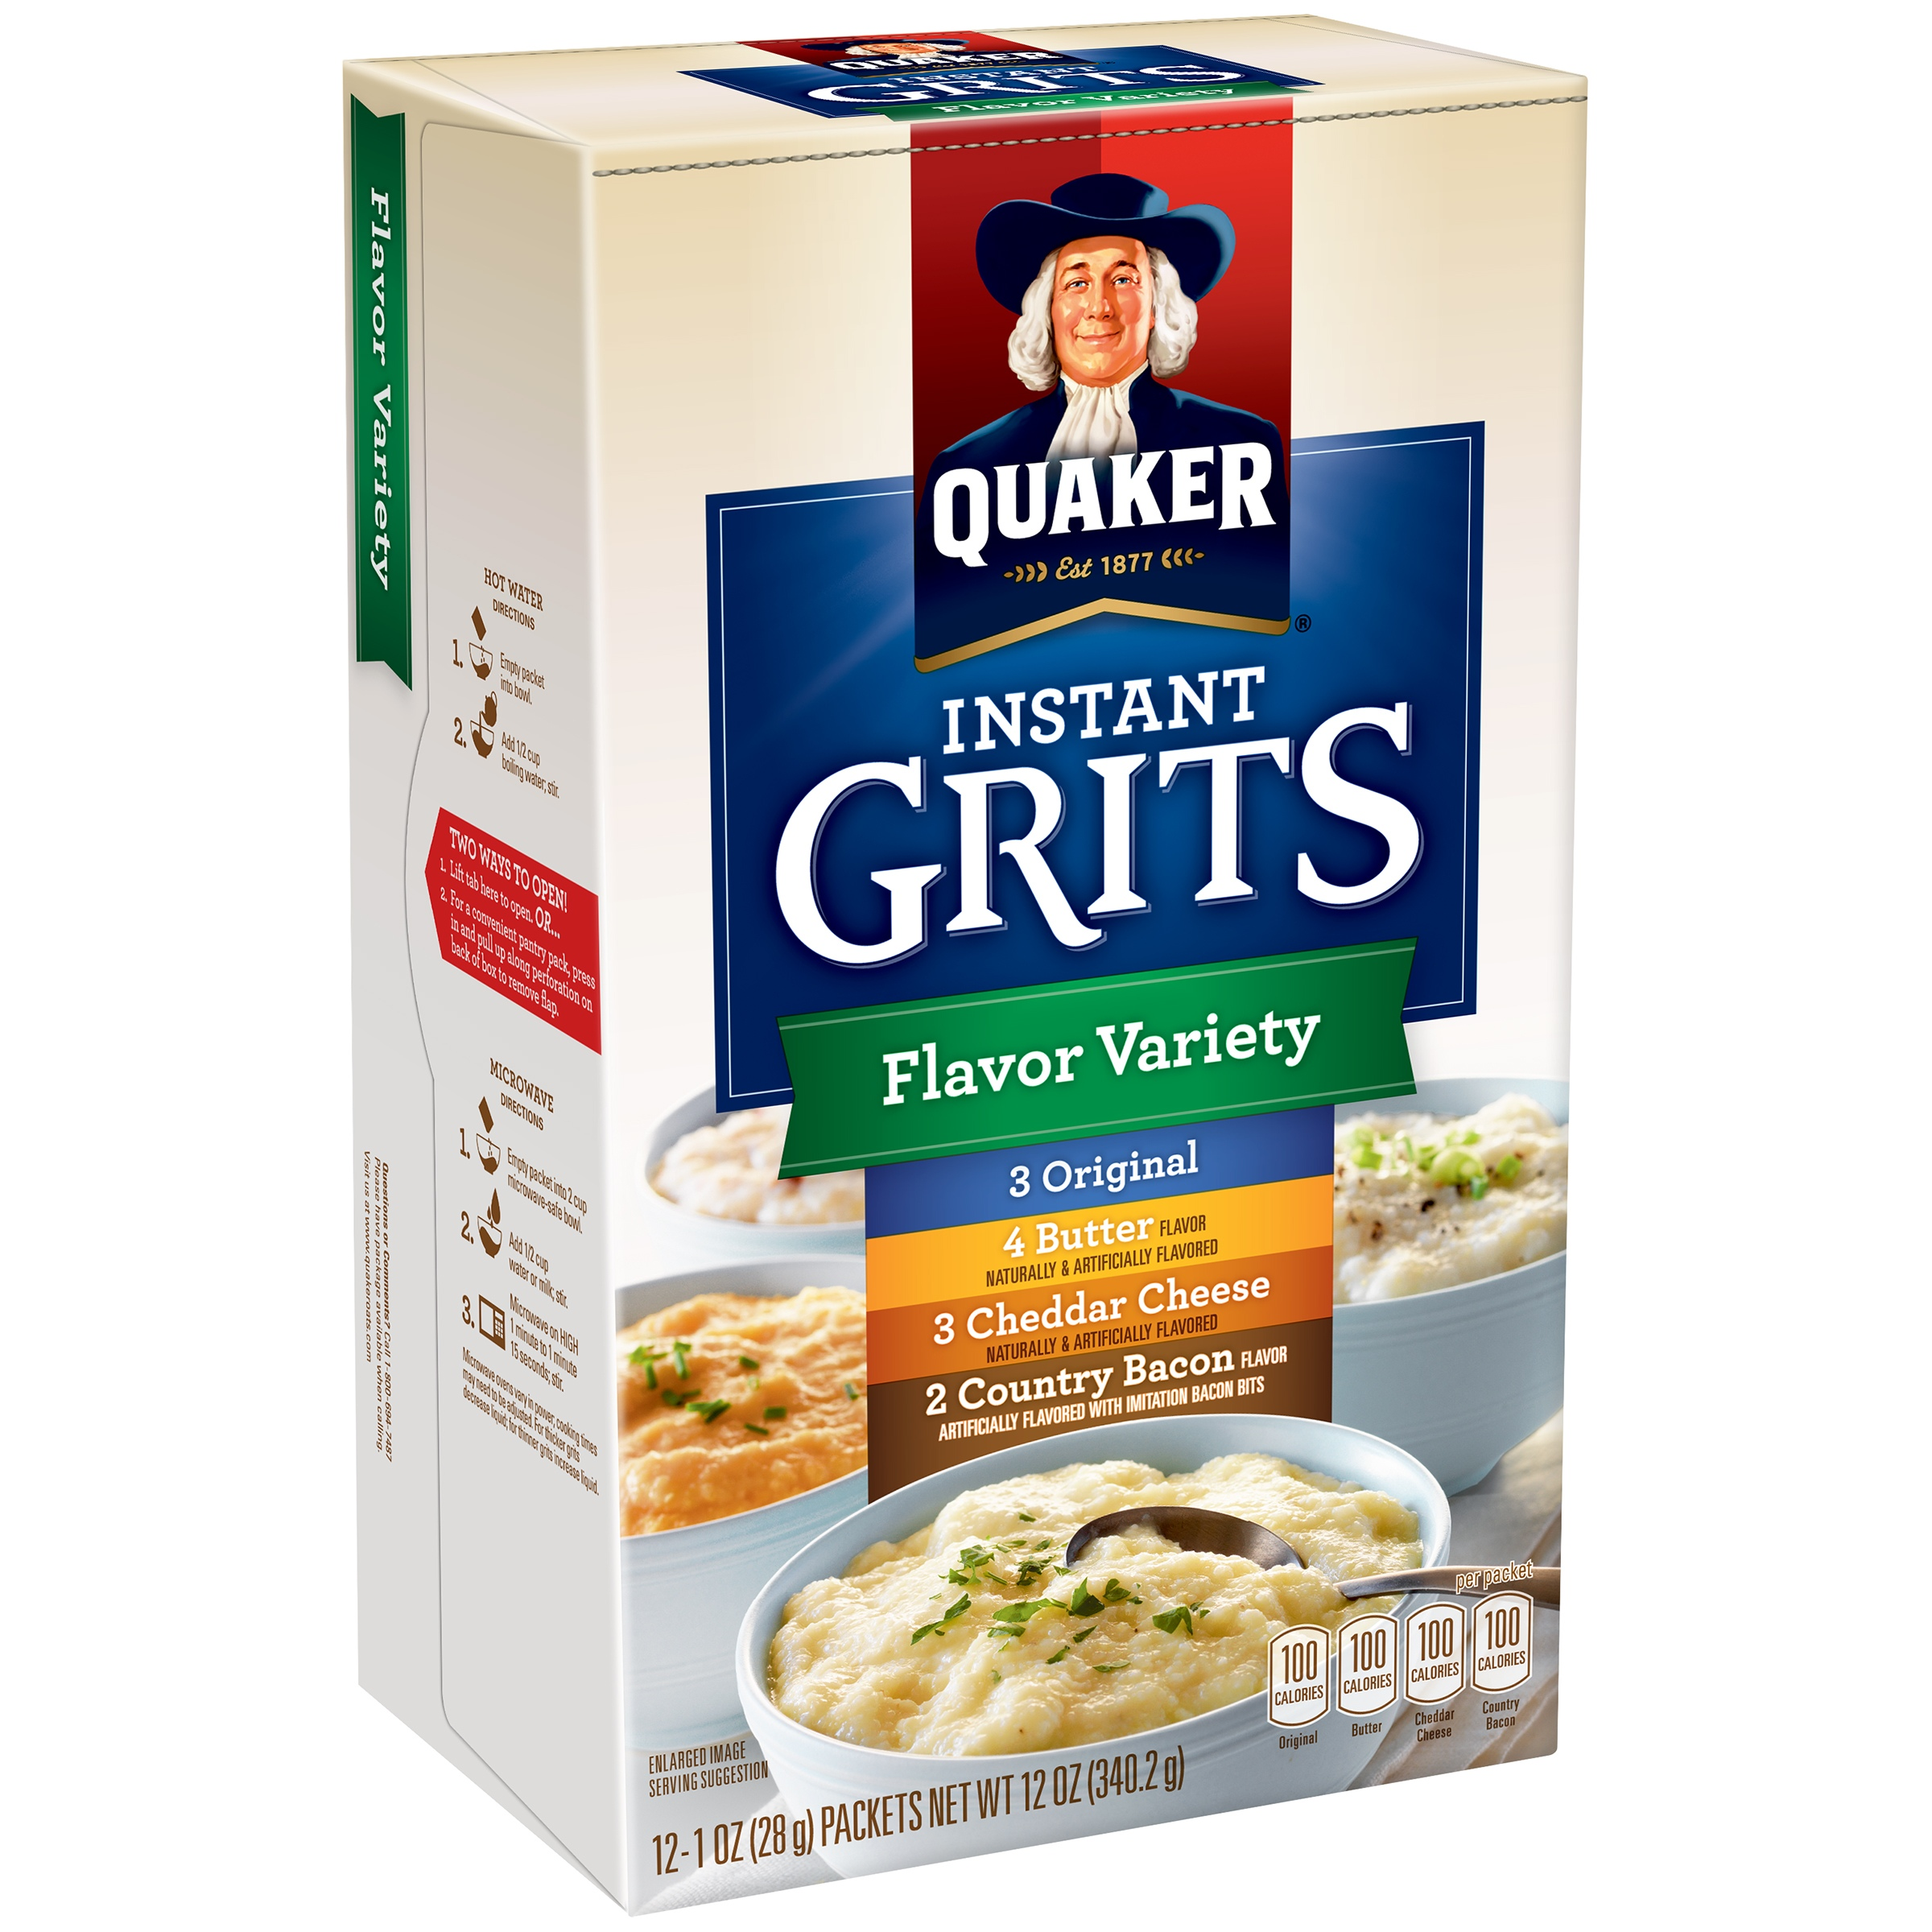 Quaker® Instant Grits Flavor Variety, Original, Butter, Cheddar Cheese, and Country Bacon, 12 Count, 1 oz. Packets